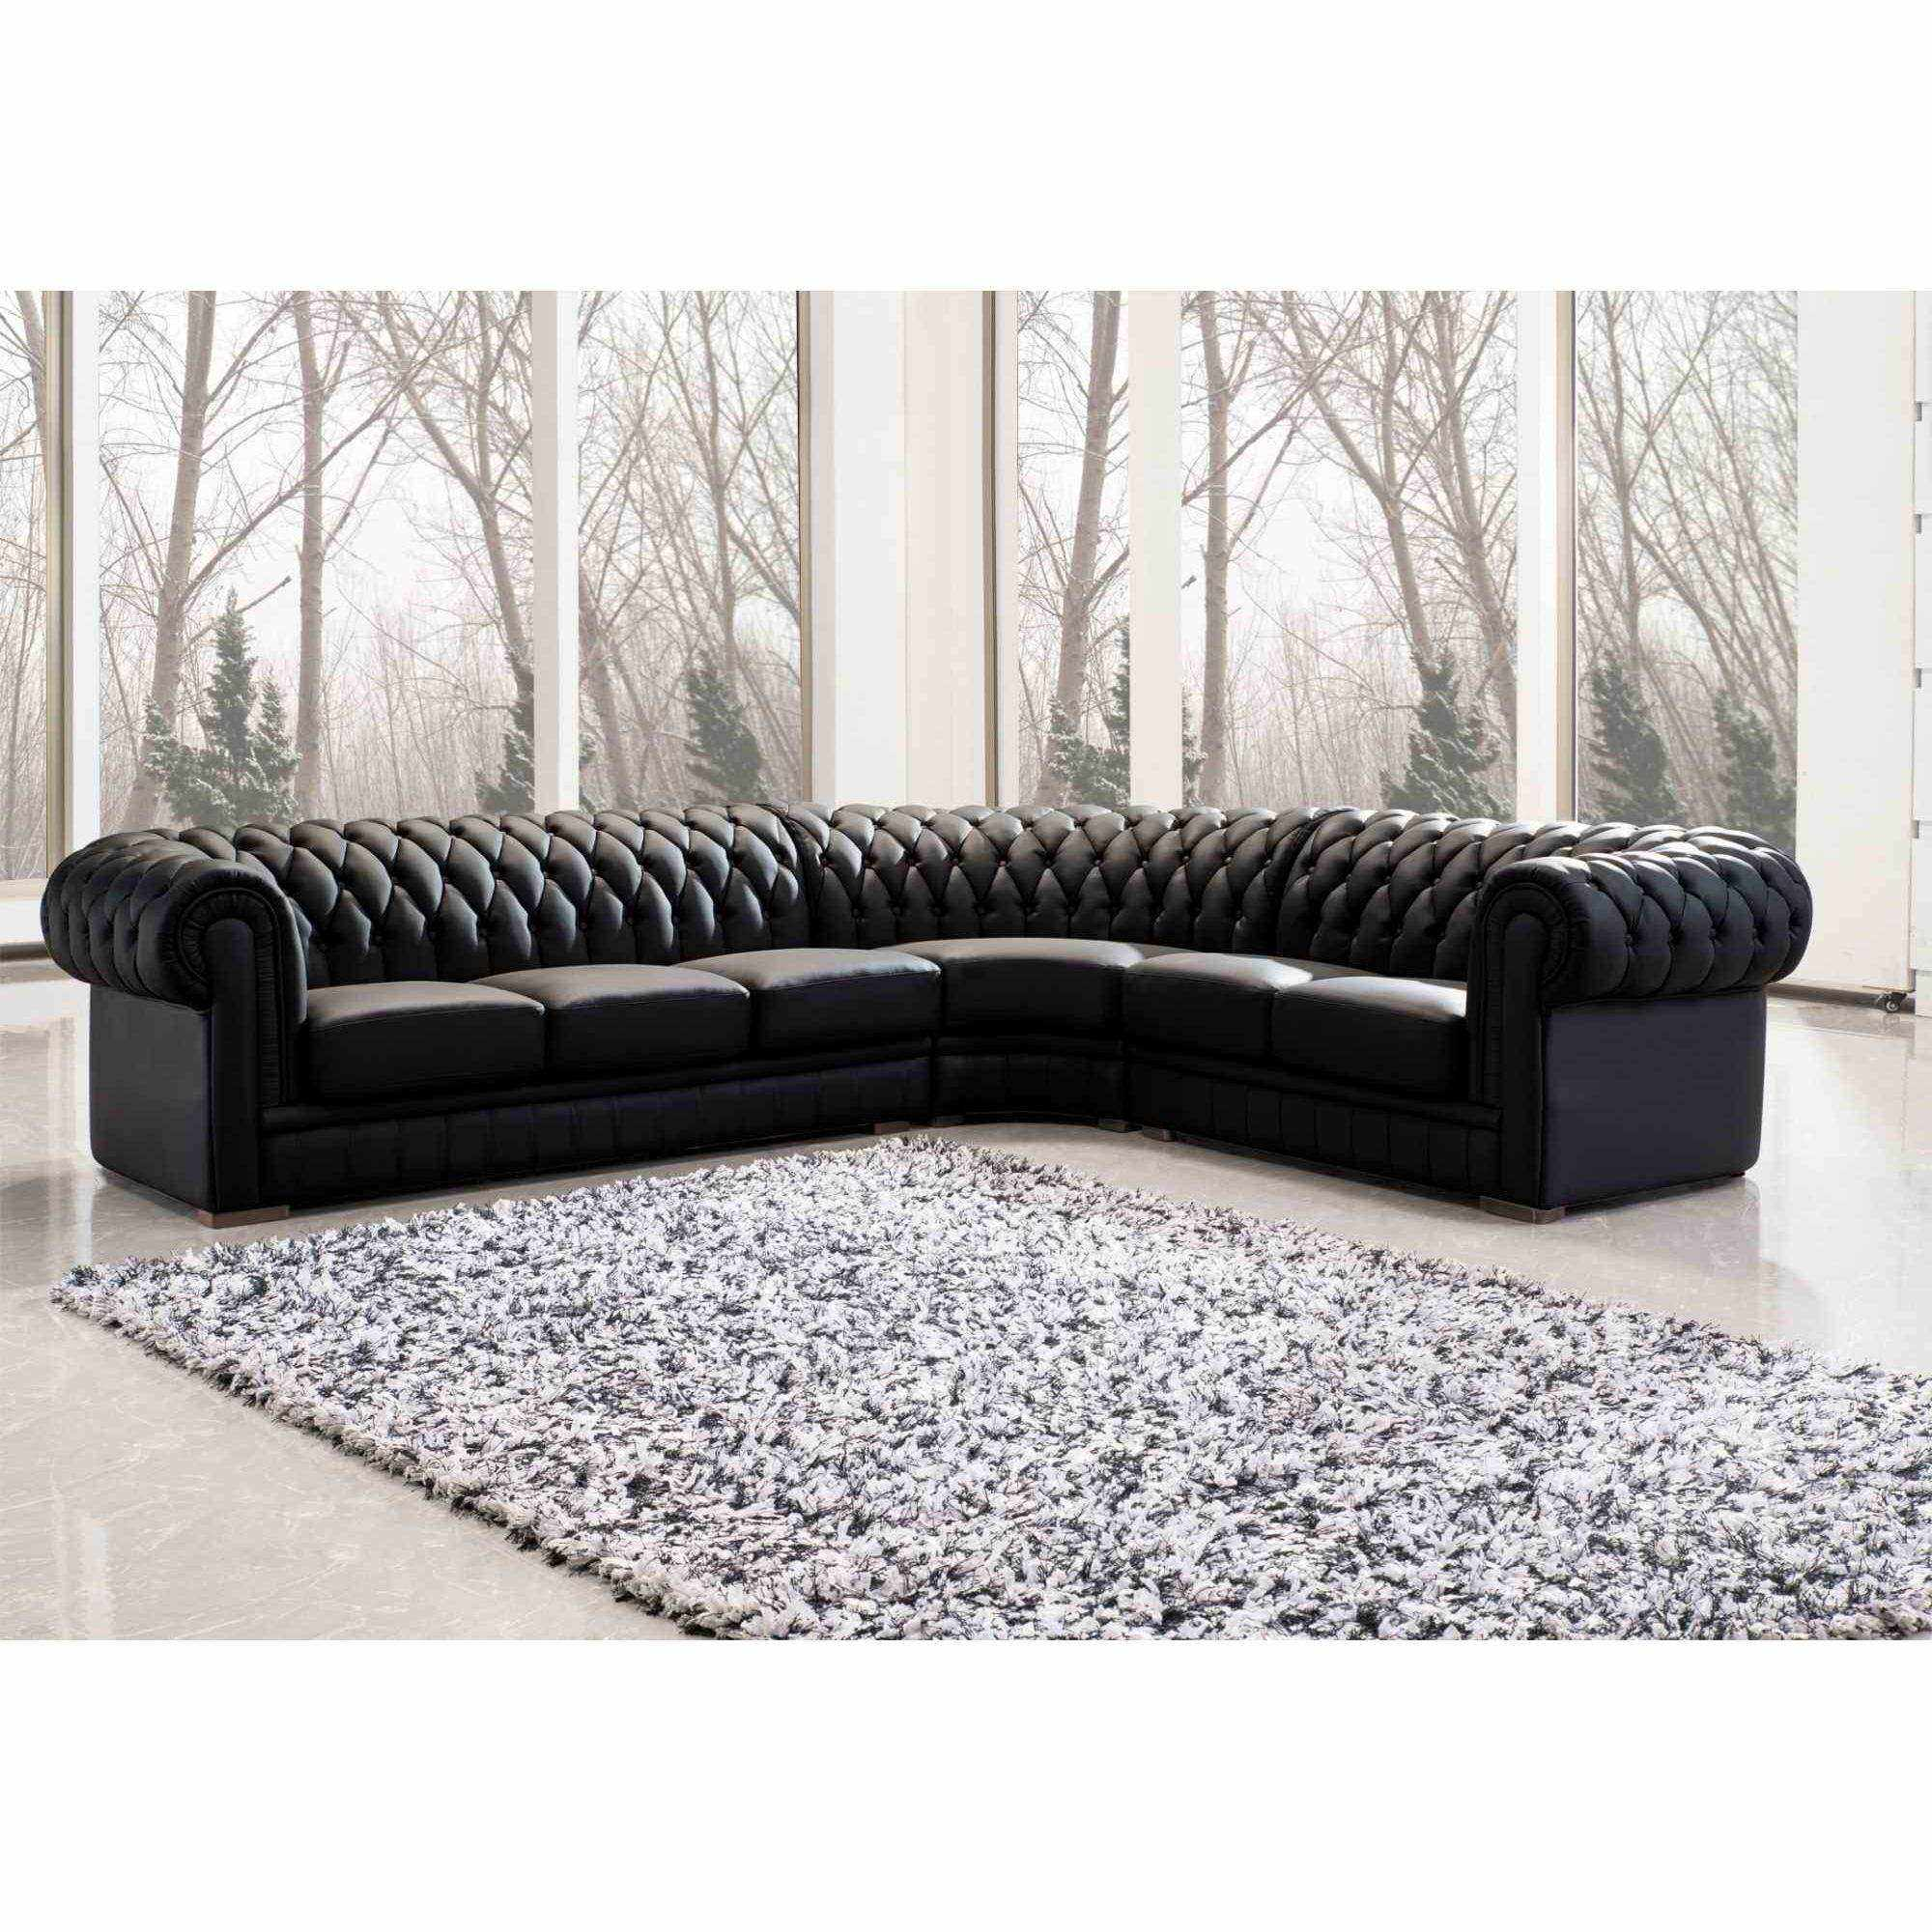 deco in paris 7 grand canape d angle capitonne noir chesterfield droit can angle chester noir 3a2. Black Bedroom Furniture Sets. Home Design Ideas